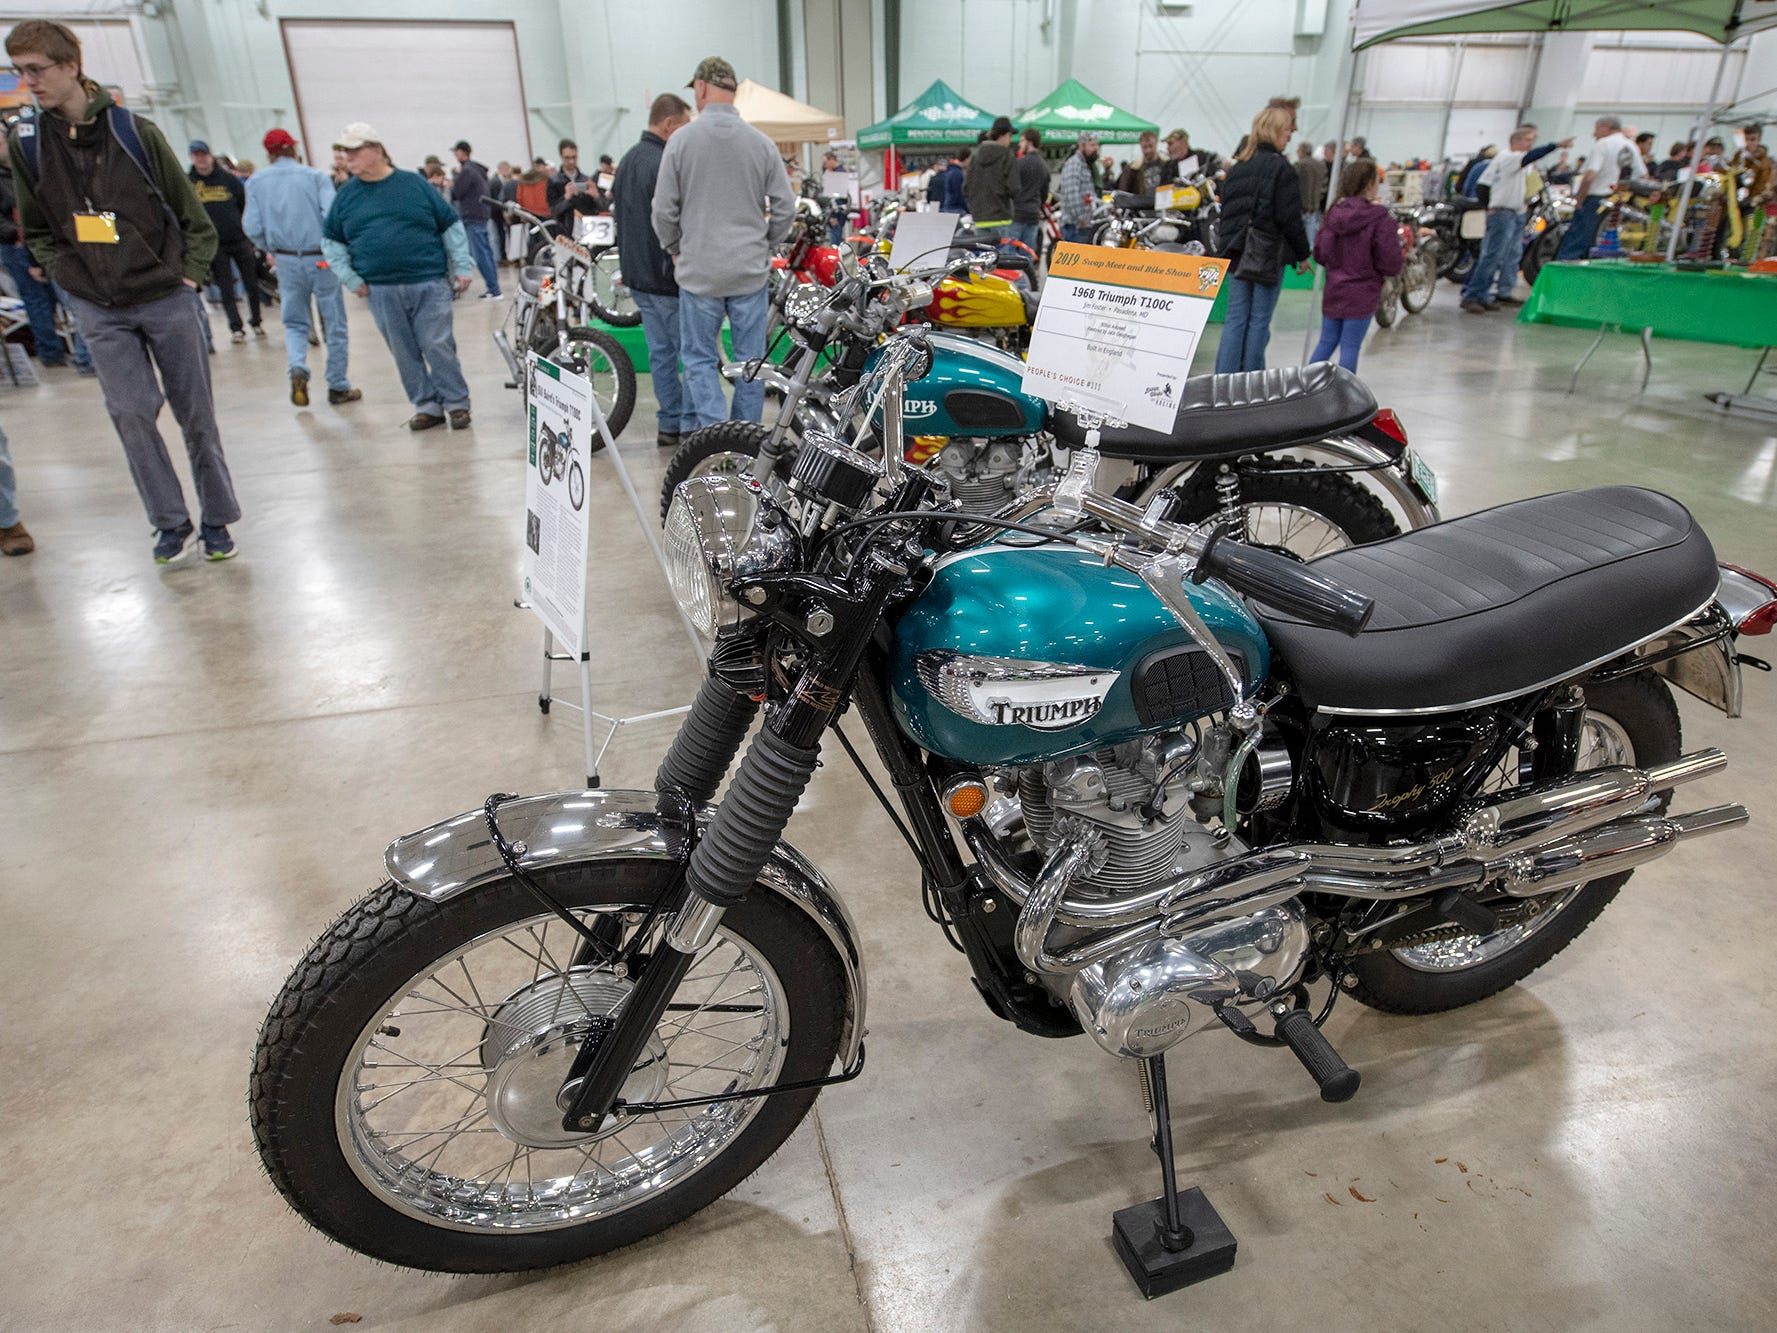 A 1968 Triumph motorcycle on display during The Potomac Vintage Riders' York Swap Meet Sunday January 27, 2019 at the York Expo Center.